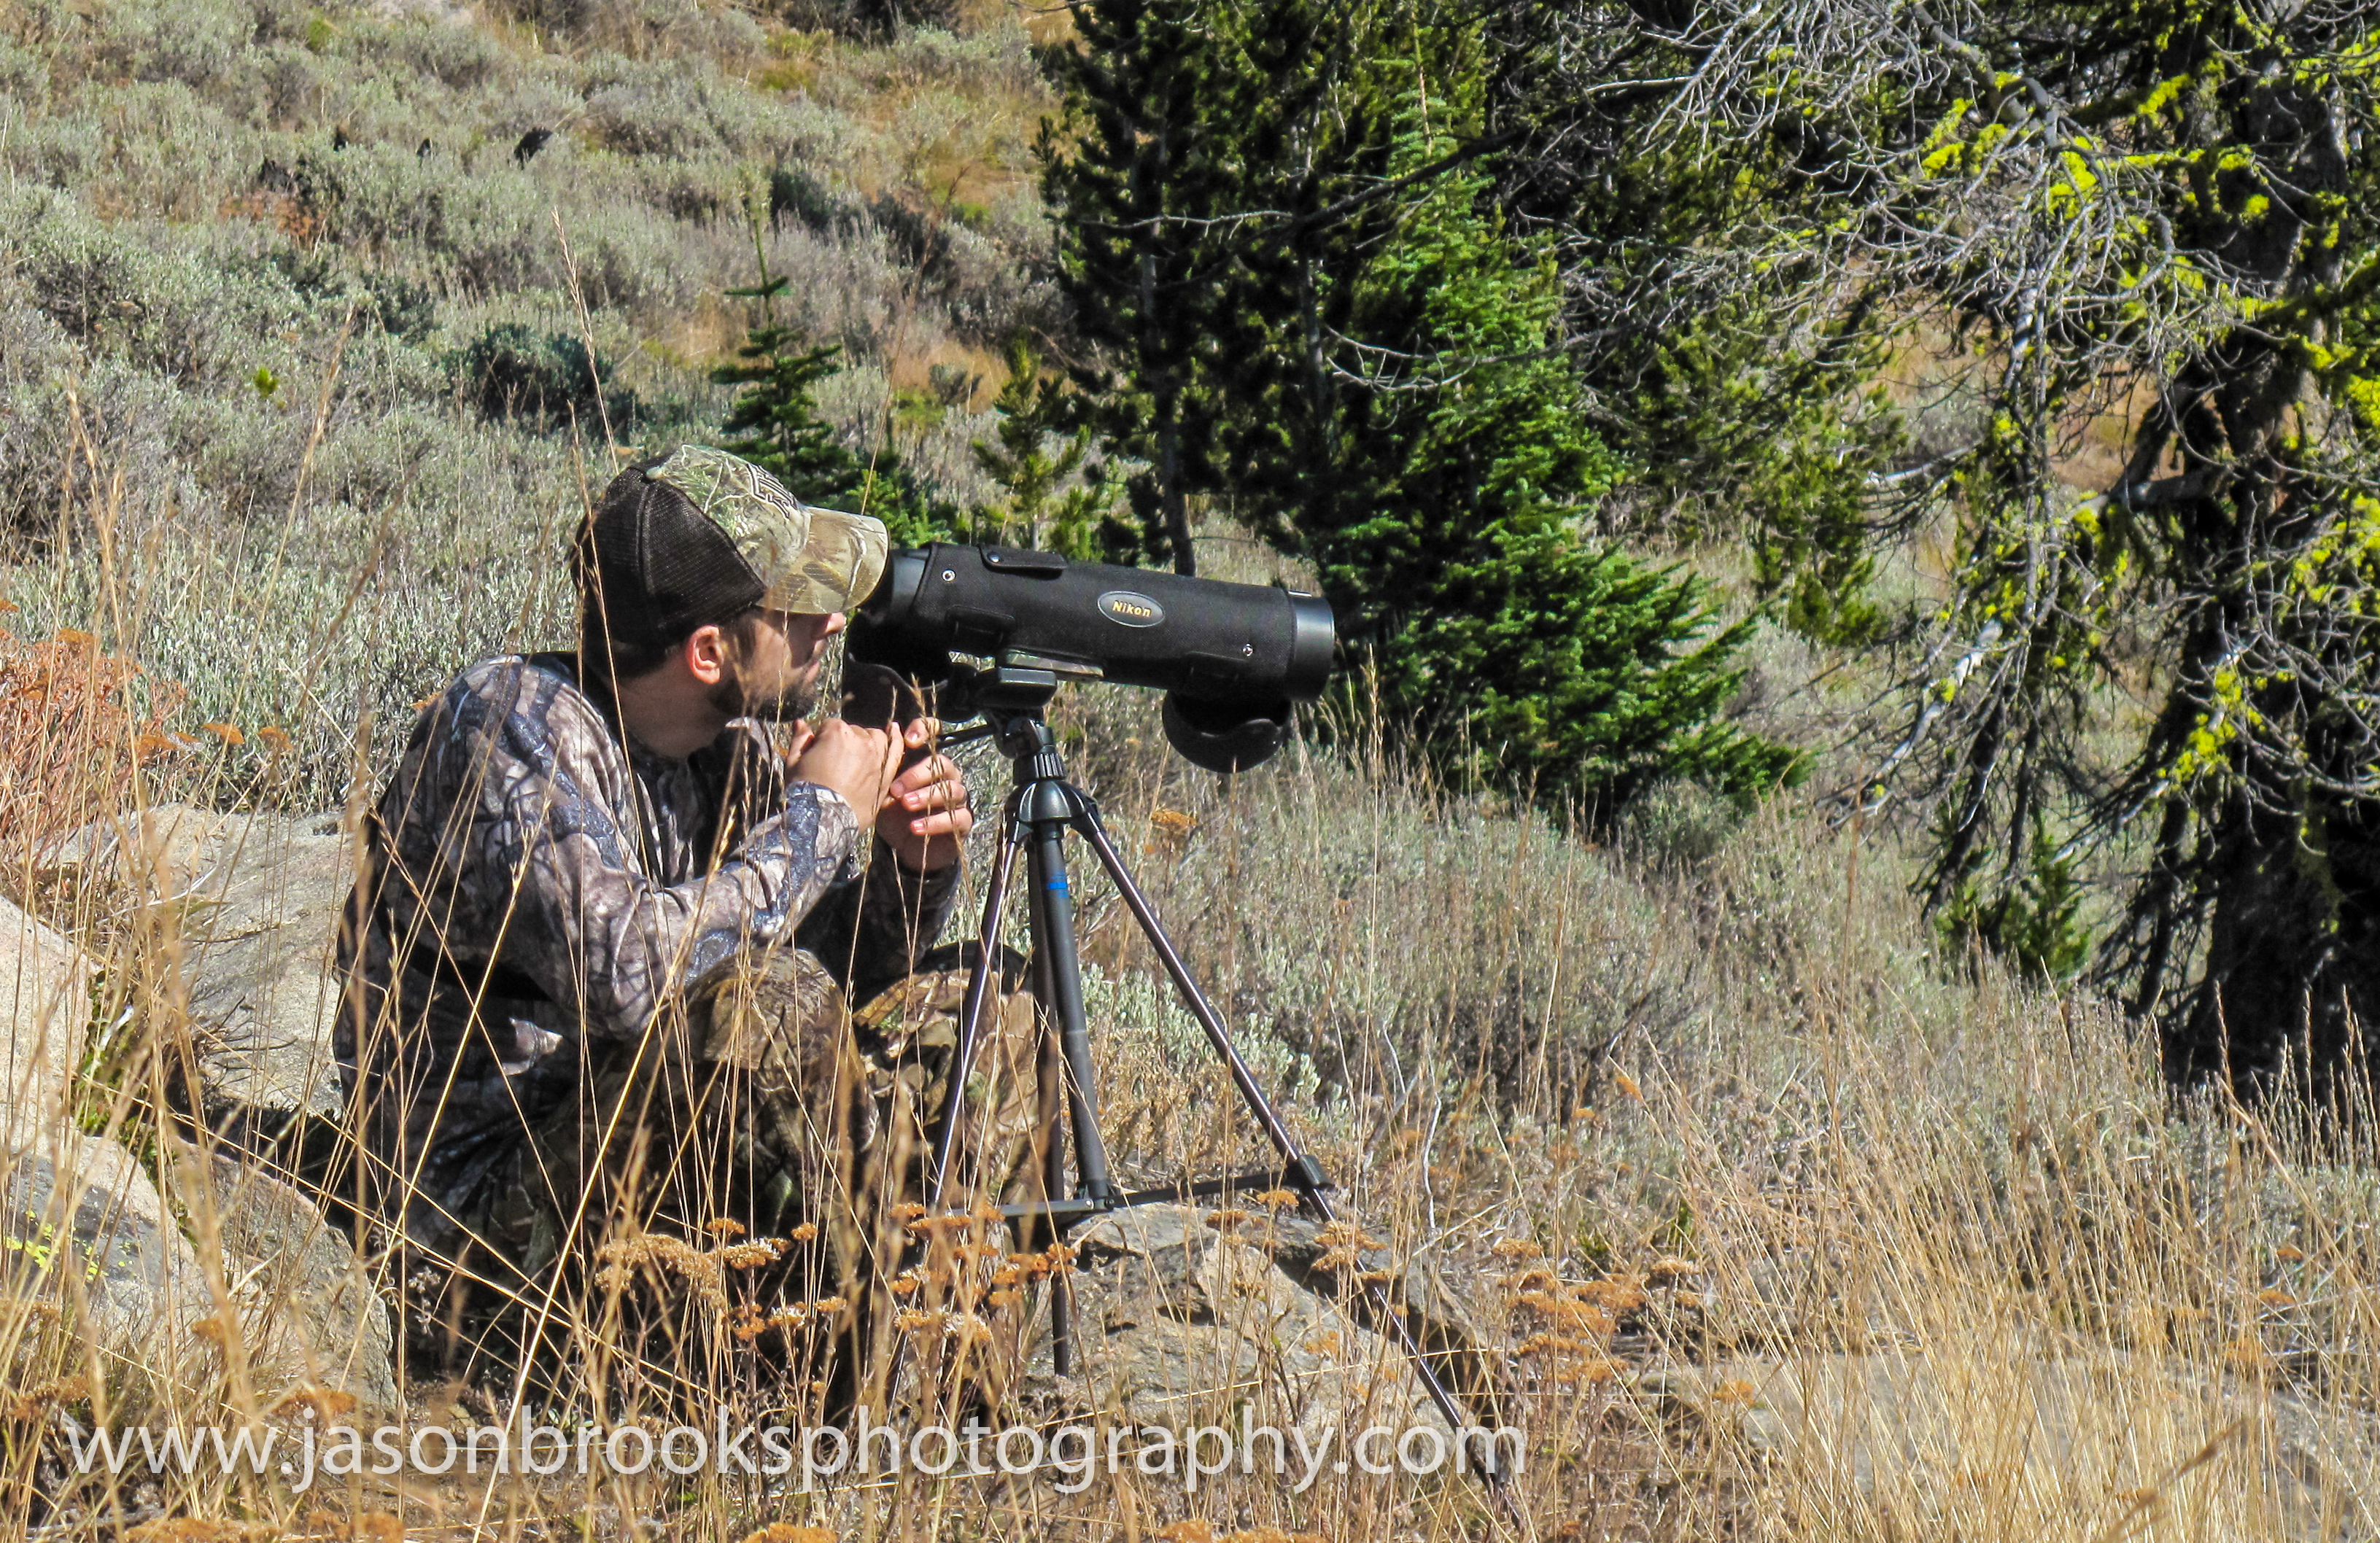 Scouting, and learning new areas lead to successful hunts-Jason Brooks